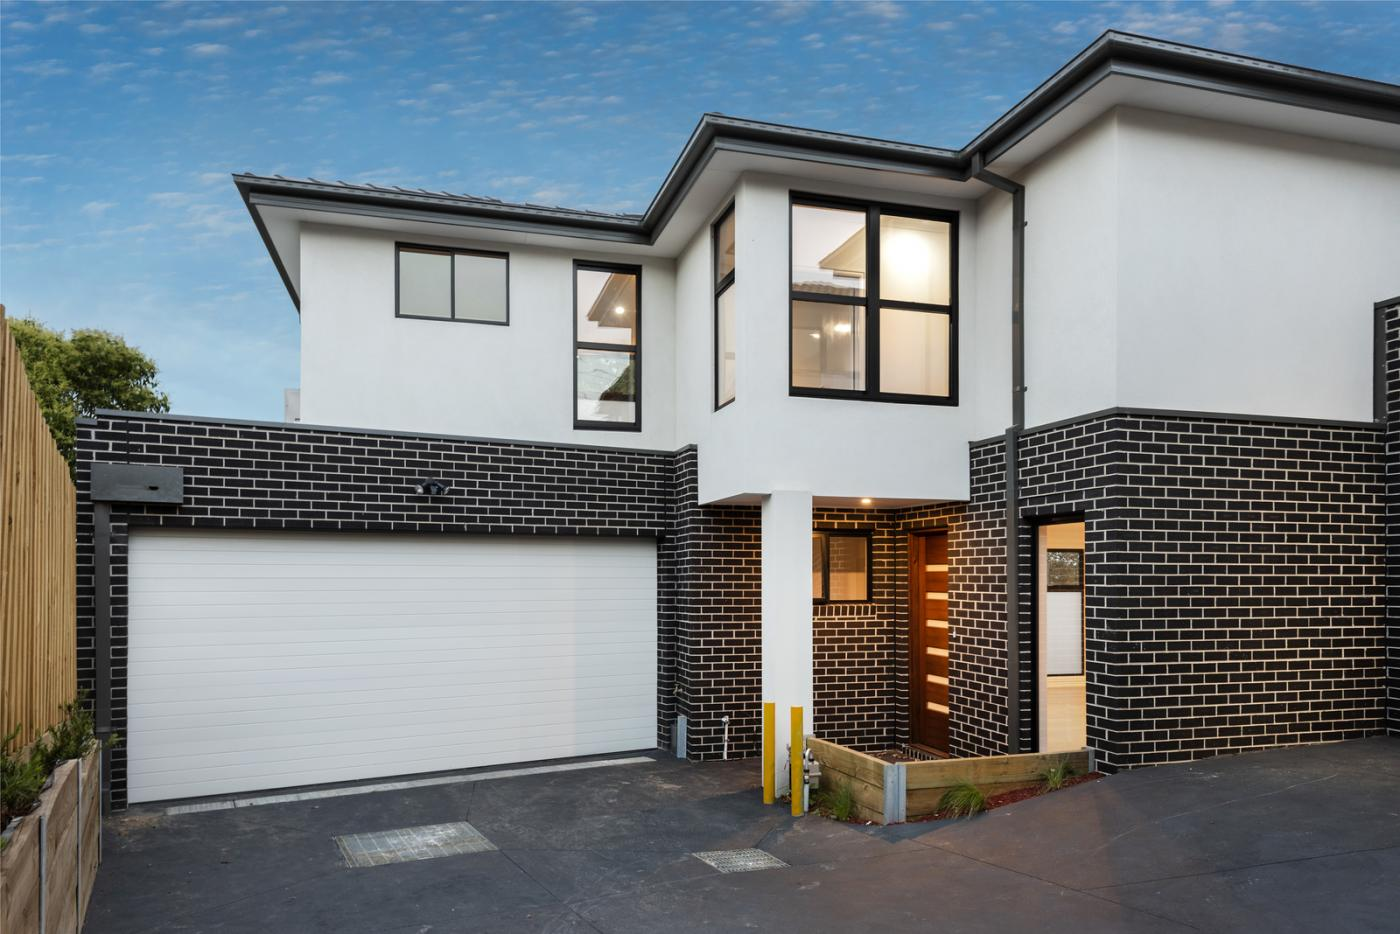 14 Carawatha Road is within walking distance to four primary schools.